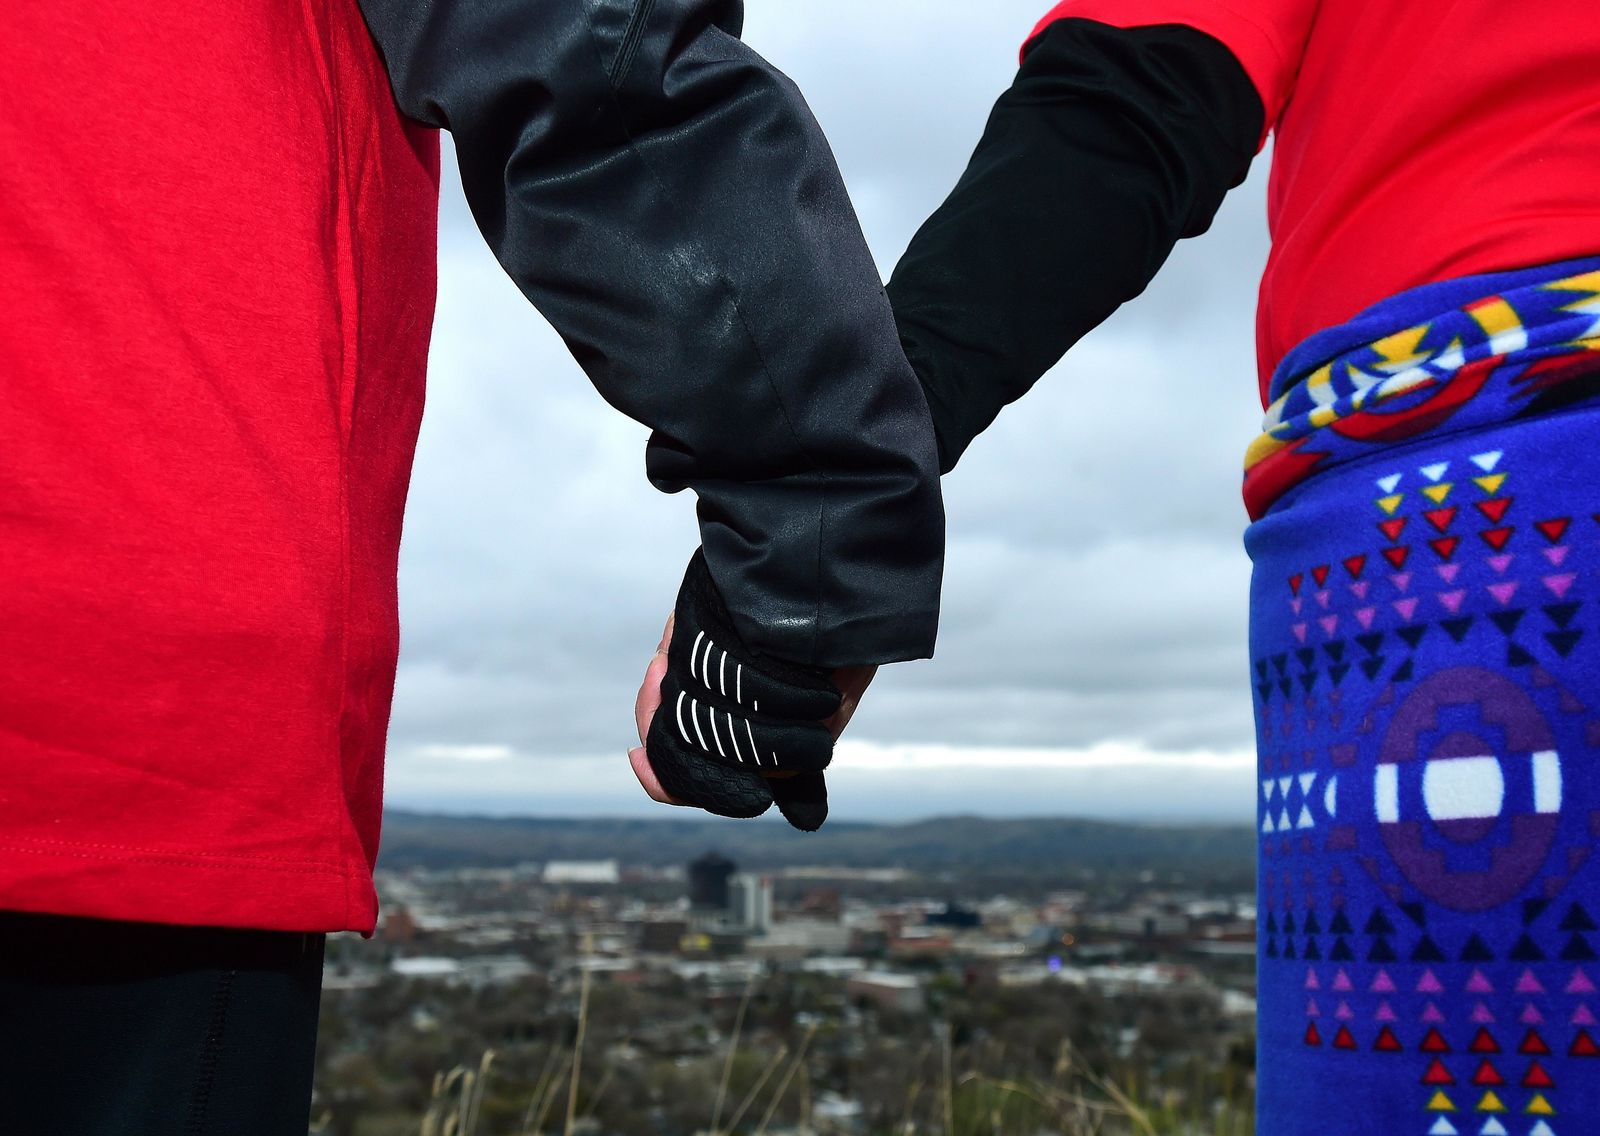 In this May 5, 2019, photo, hundreds hold hands as they form a line of the edge of the Billings Rimrocks for Line the Rims in Red event to honor missing and murdered indigenous people, in Billings, Mont. The event was organized by MSU Billings and community partners. Participants brought posters of men, women and children who are missing, and changed the name of the local movement to Missing and Murdered Indigenous People.  (Larry Mayer/The Billings Gazette via AP)